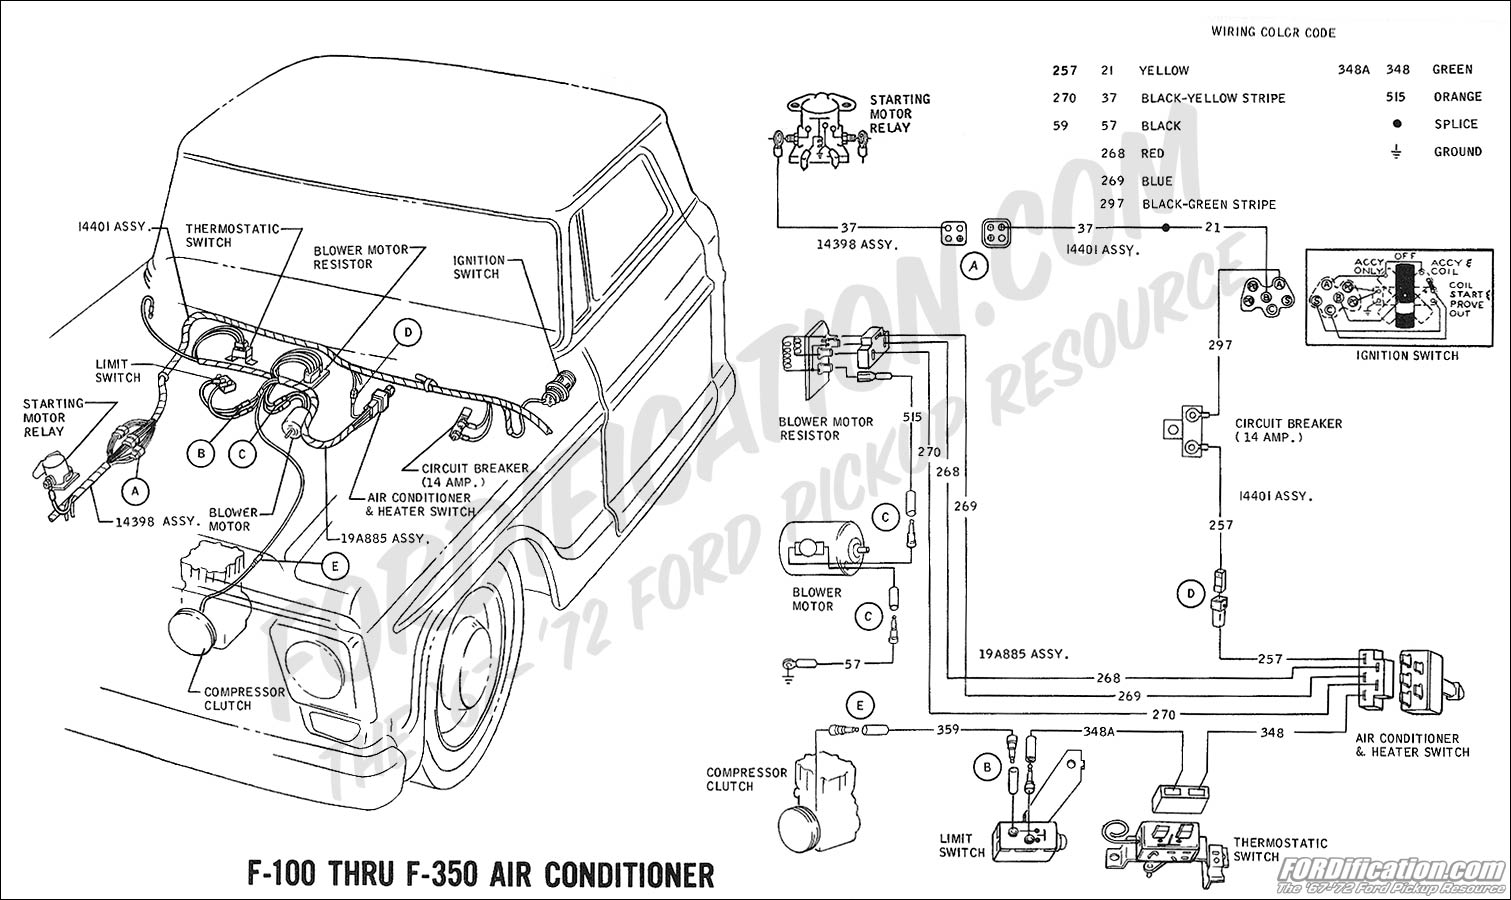 2002 Ford Explorer Ac System Diagram Moreover 2003 Expedition A C Clutch Wire 2001 Compressor Wiring Library Air